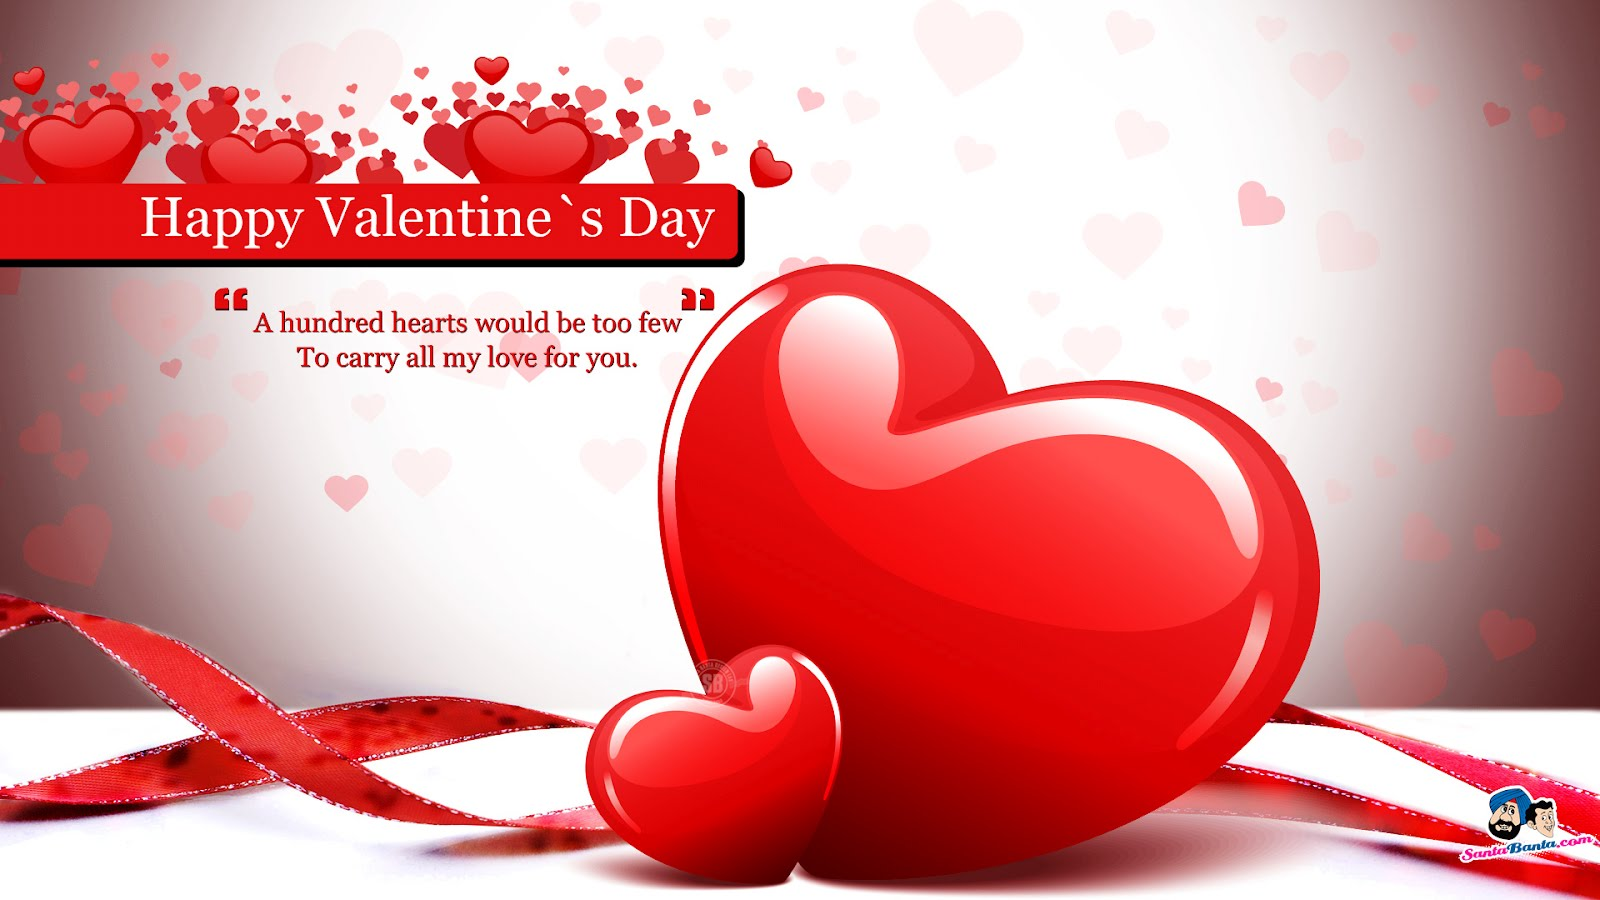 Happy Valentines Day Greetings Cards 2017 Top HD Cards of Happy – Valentine Day Cards for Wife